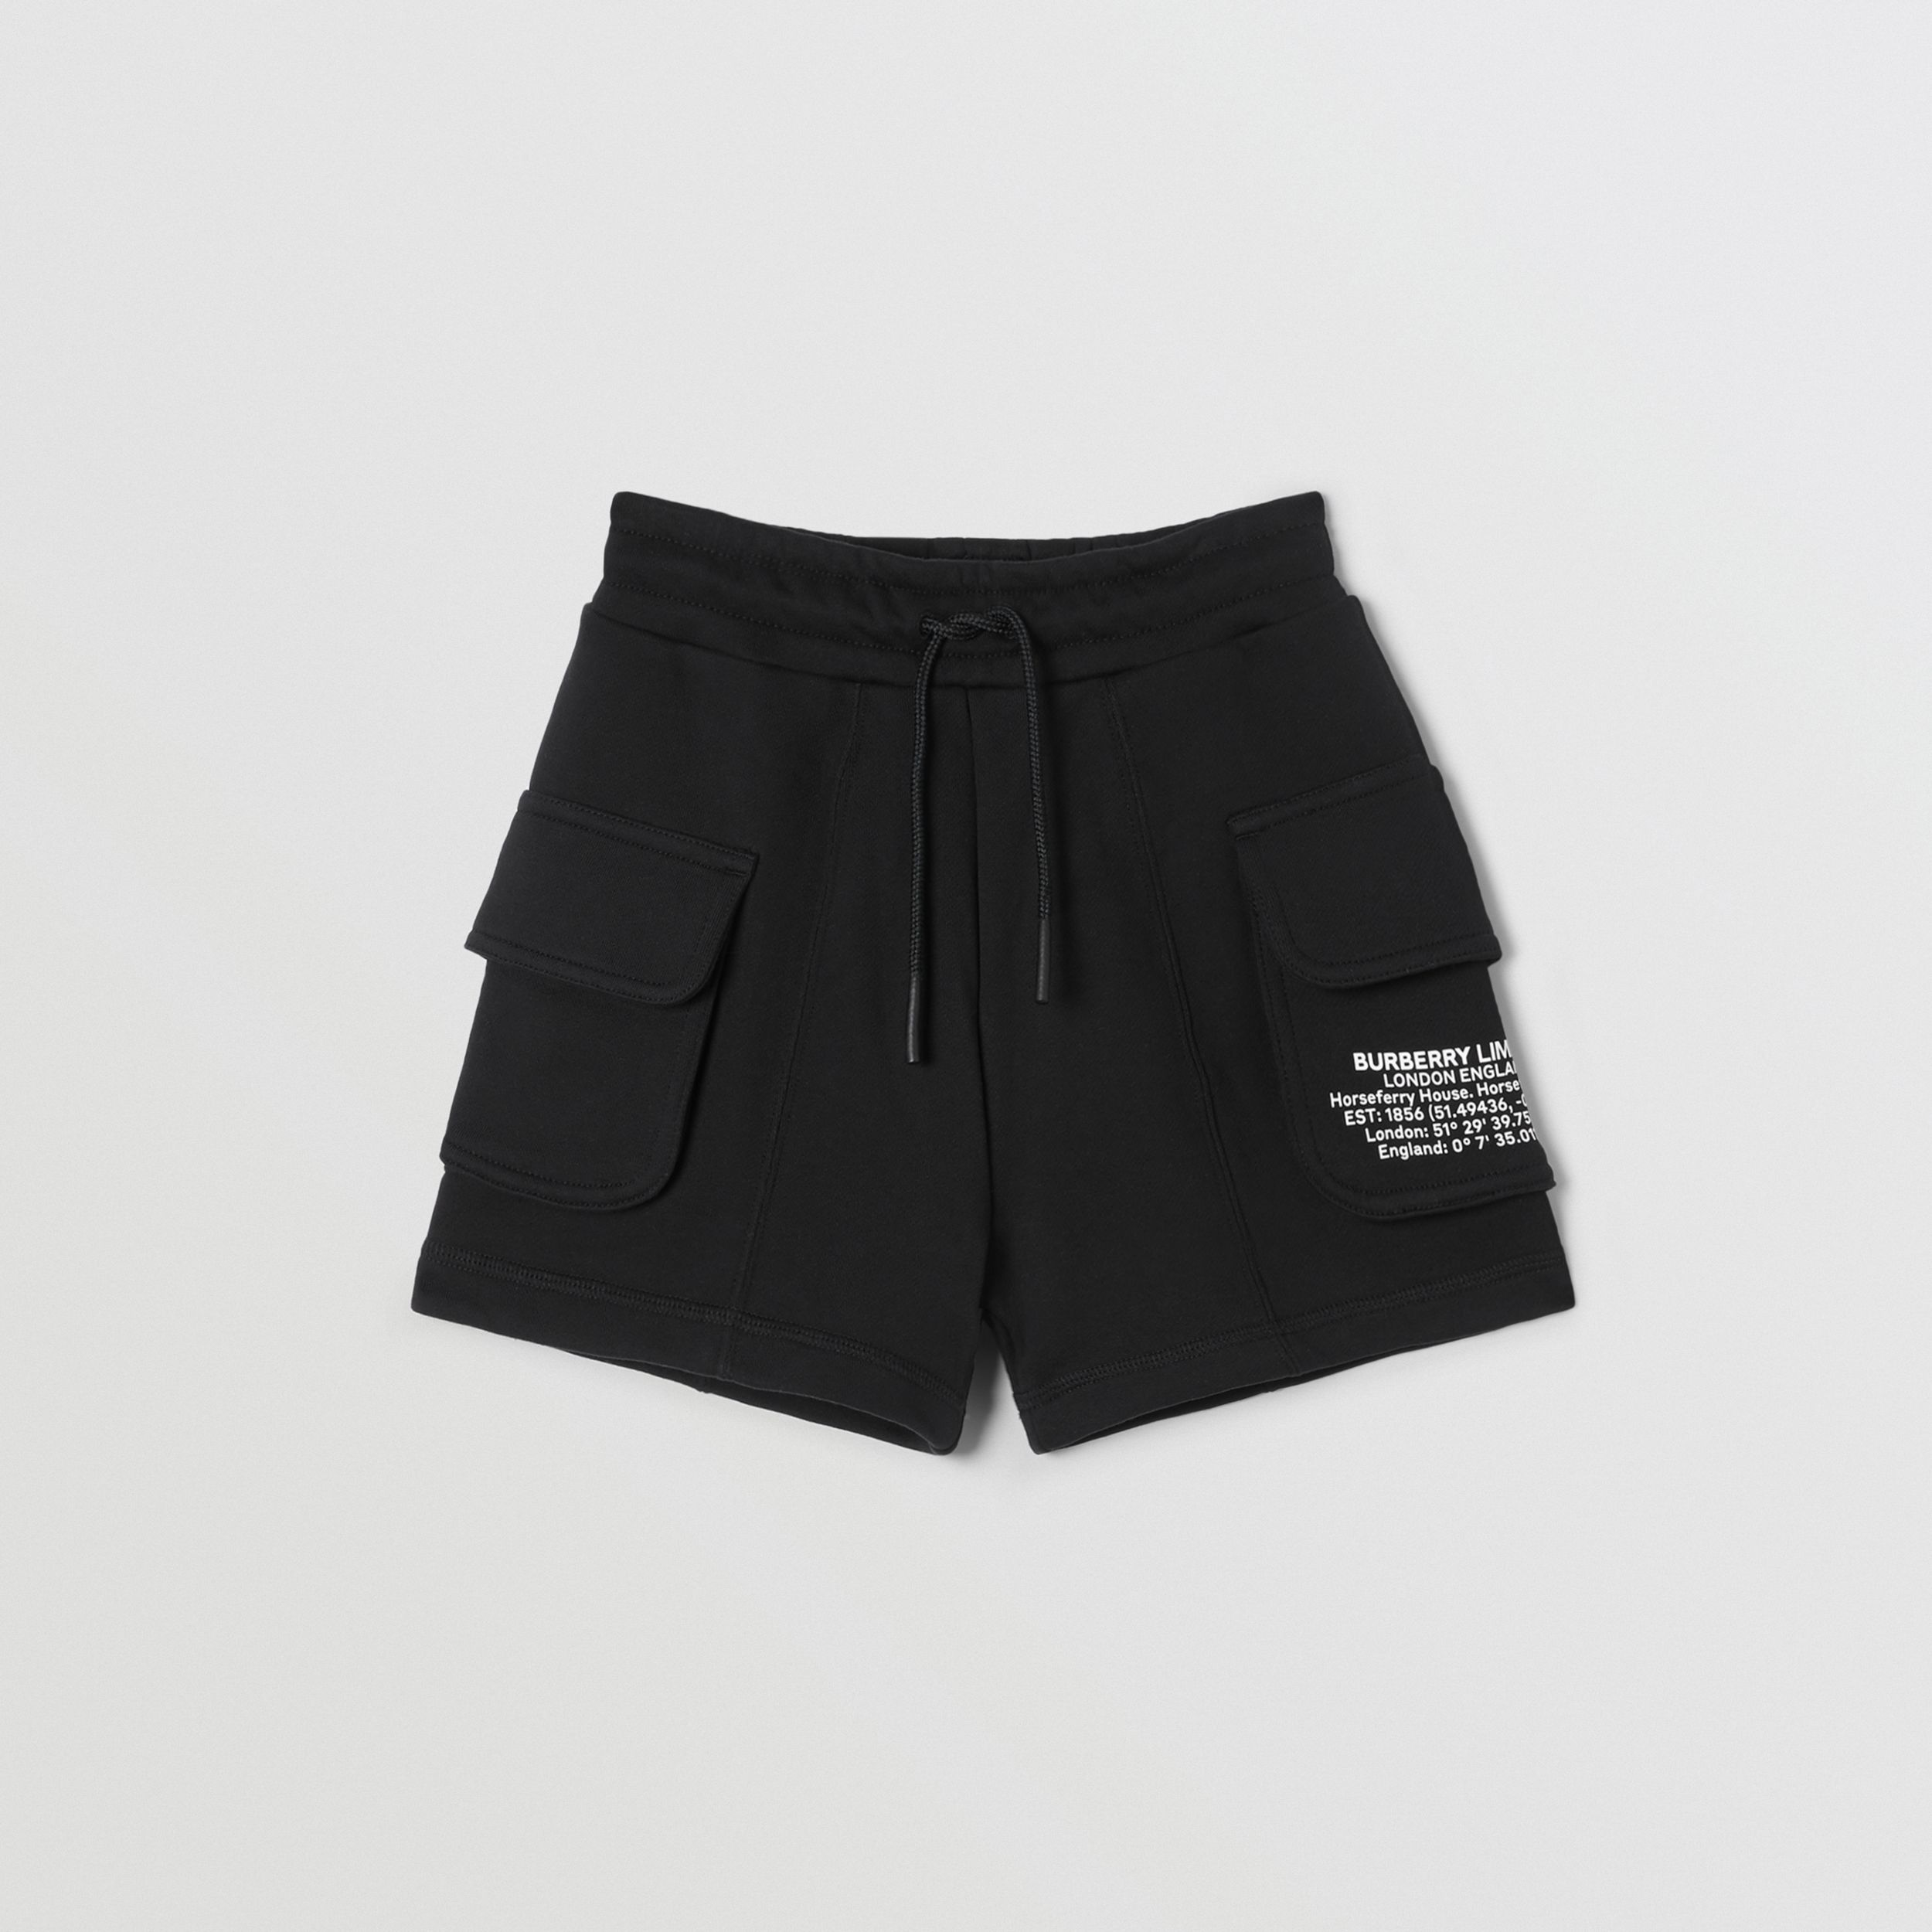 Location Print Cotton Drawcord Shorts in Black | Burberry Hong Kong S.A.R. - 1